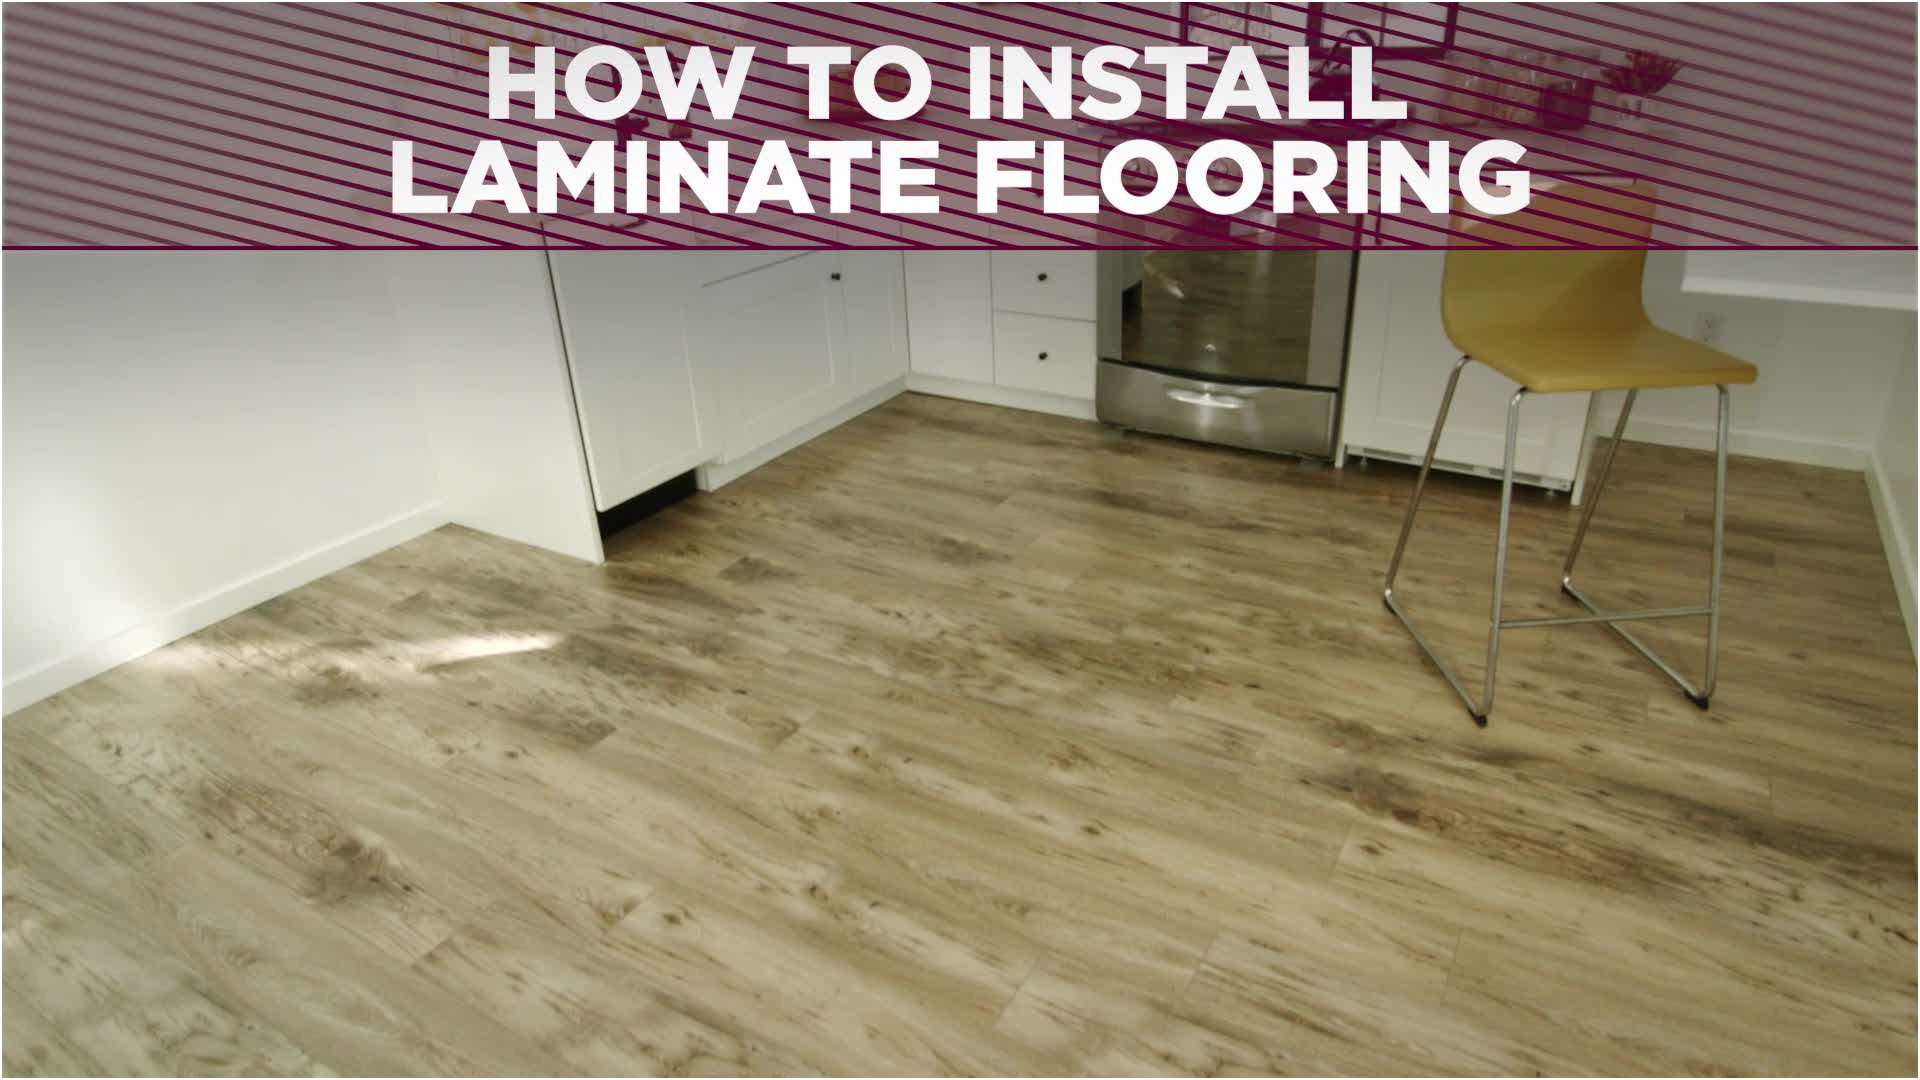 Underlayment for Engineered Hardwood Floors Of Best Way to Install Engineered Wood Flooring Over Concrete Hardwood with Regard to Best Way to Install Engineered Wood Flooring Over Concrete Hardwood Floor Installation How to Nail Hardwood